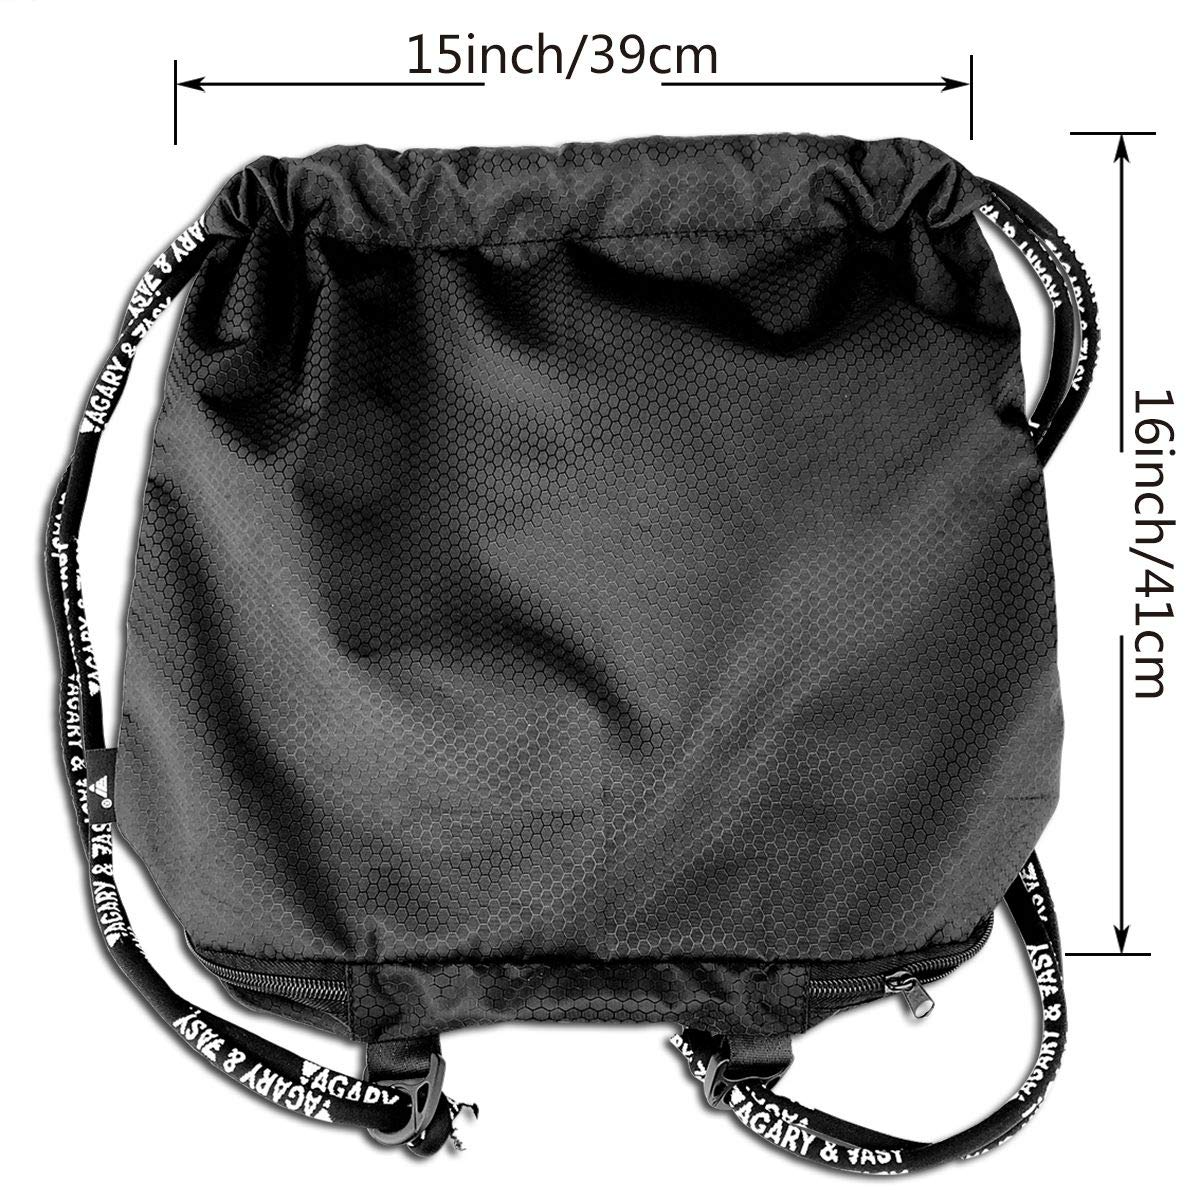 HUOPR5Q NF Drawstring Backpack Sport Gym Sack Shoulder Bulk Bag Dance Bag for School Travel